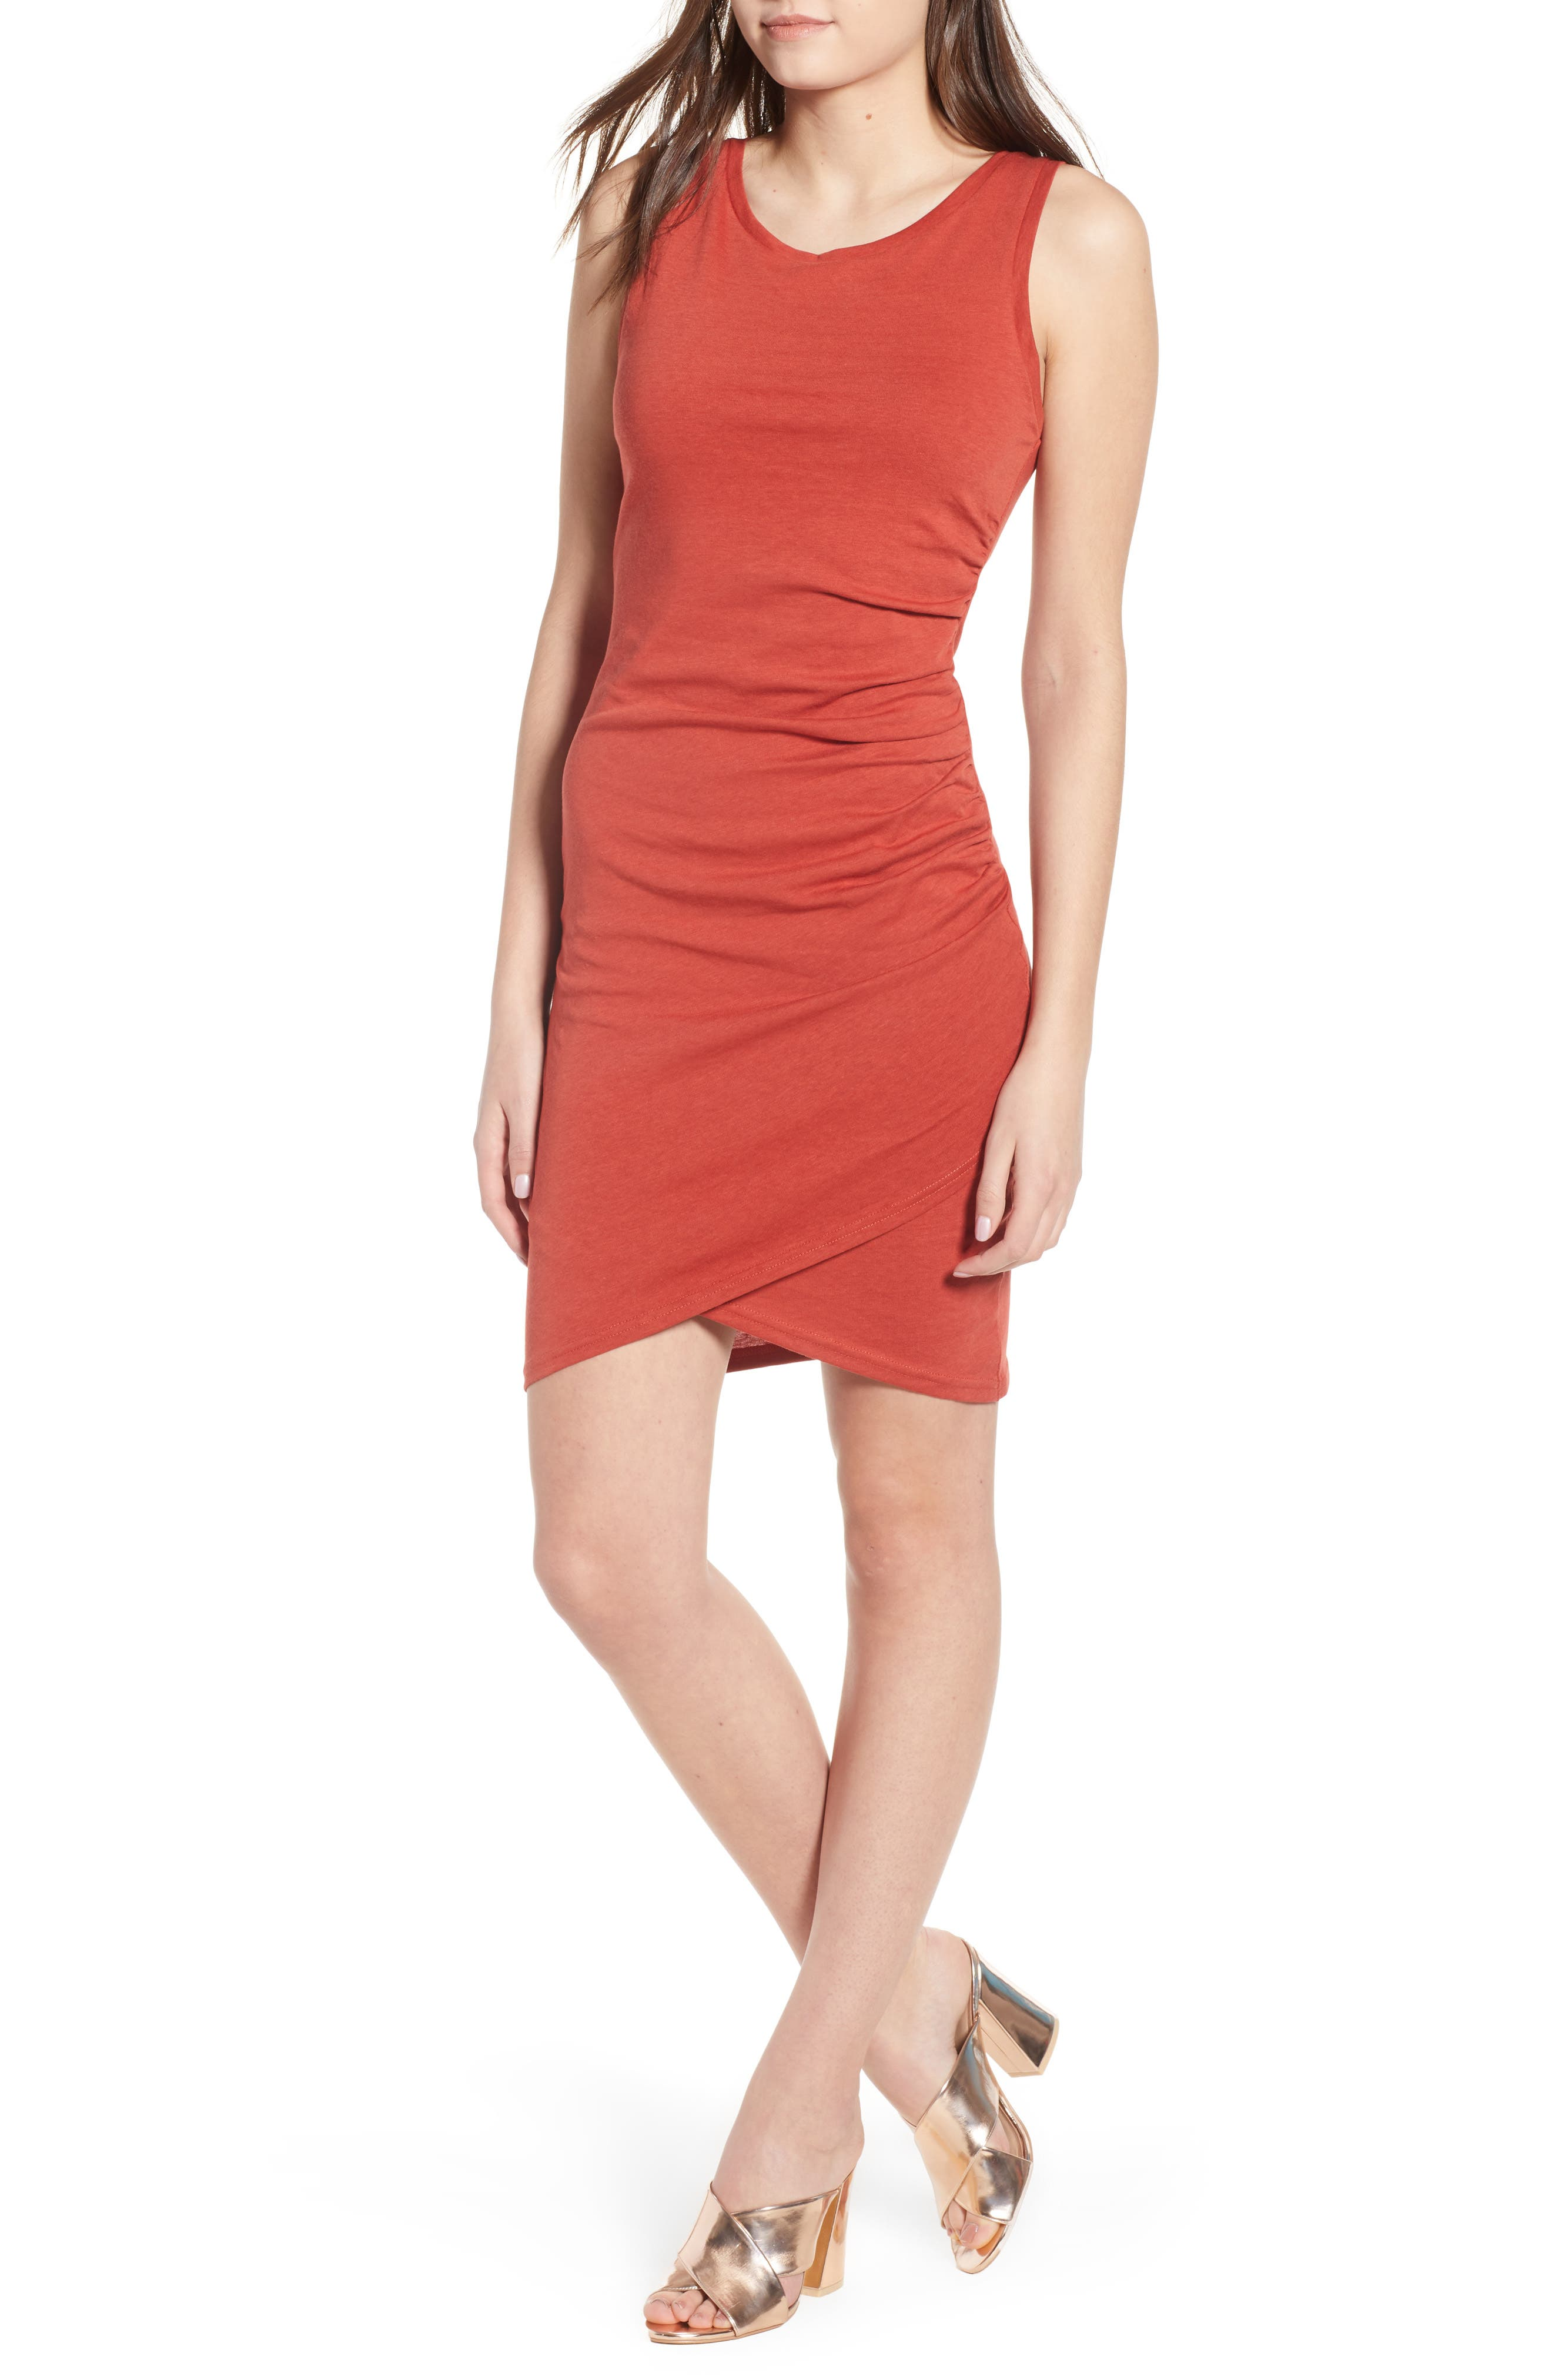 Ruched Body-Con Tank Dress,                             Main thumbnail 1, color,                             Rust Bossa Nova